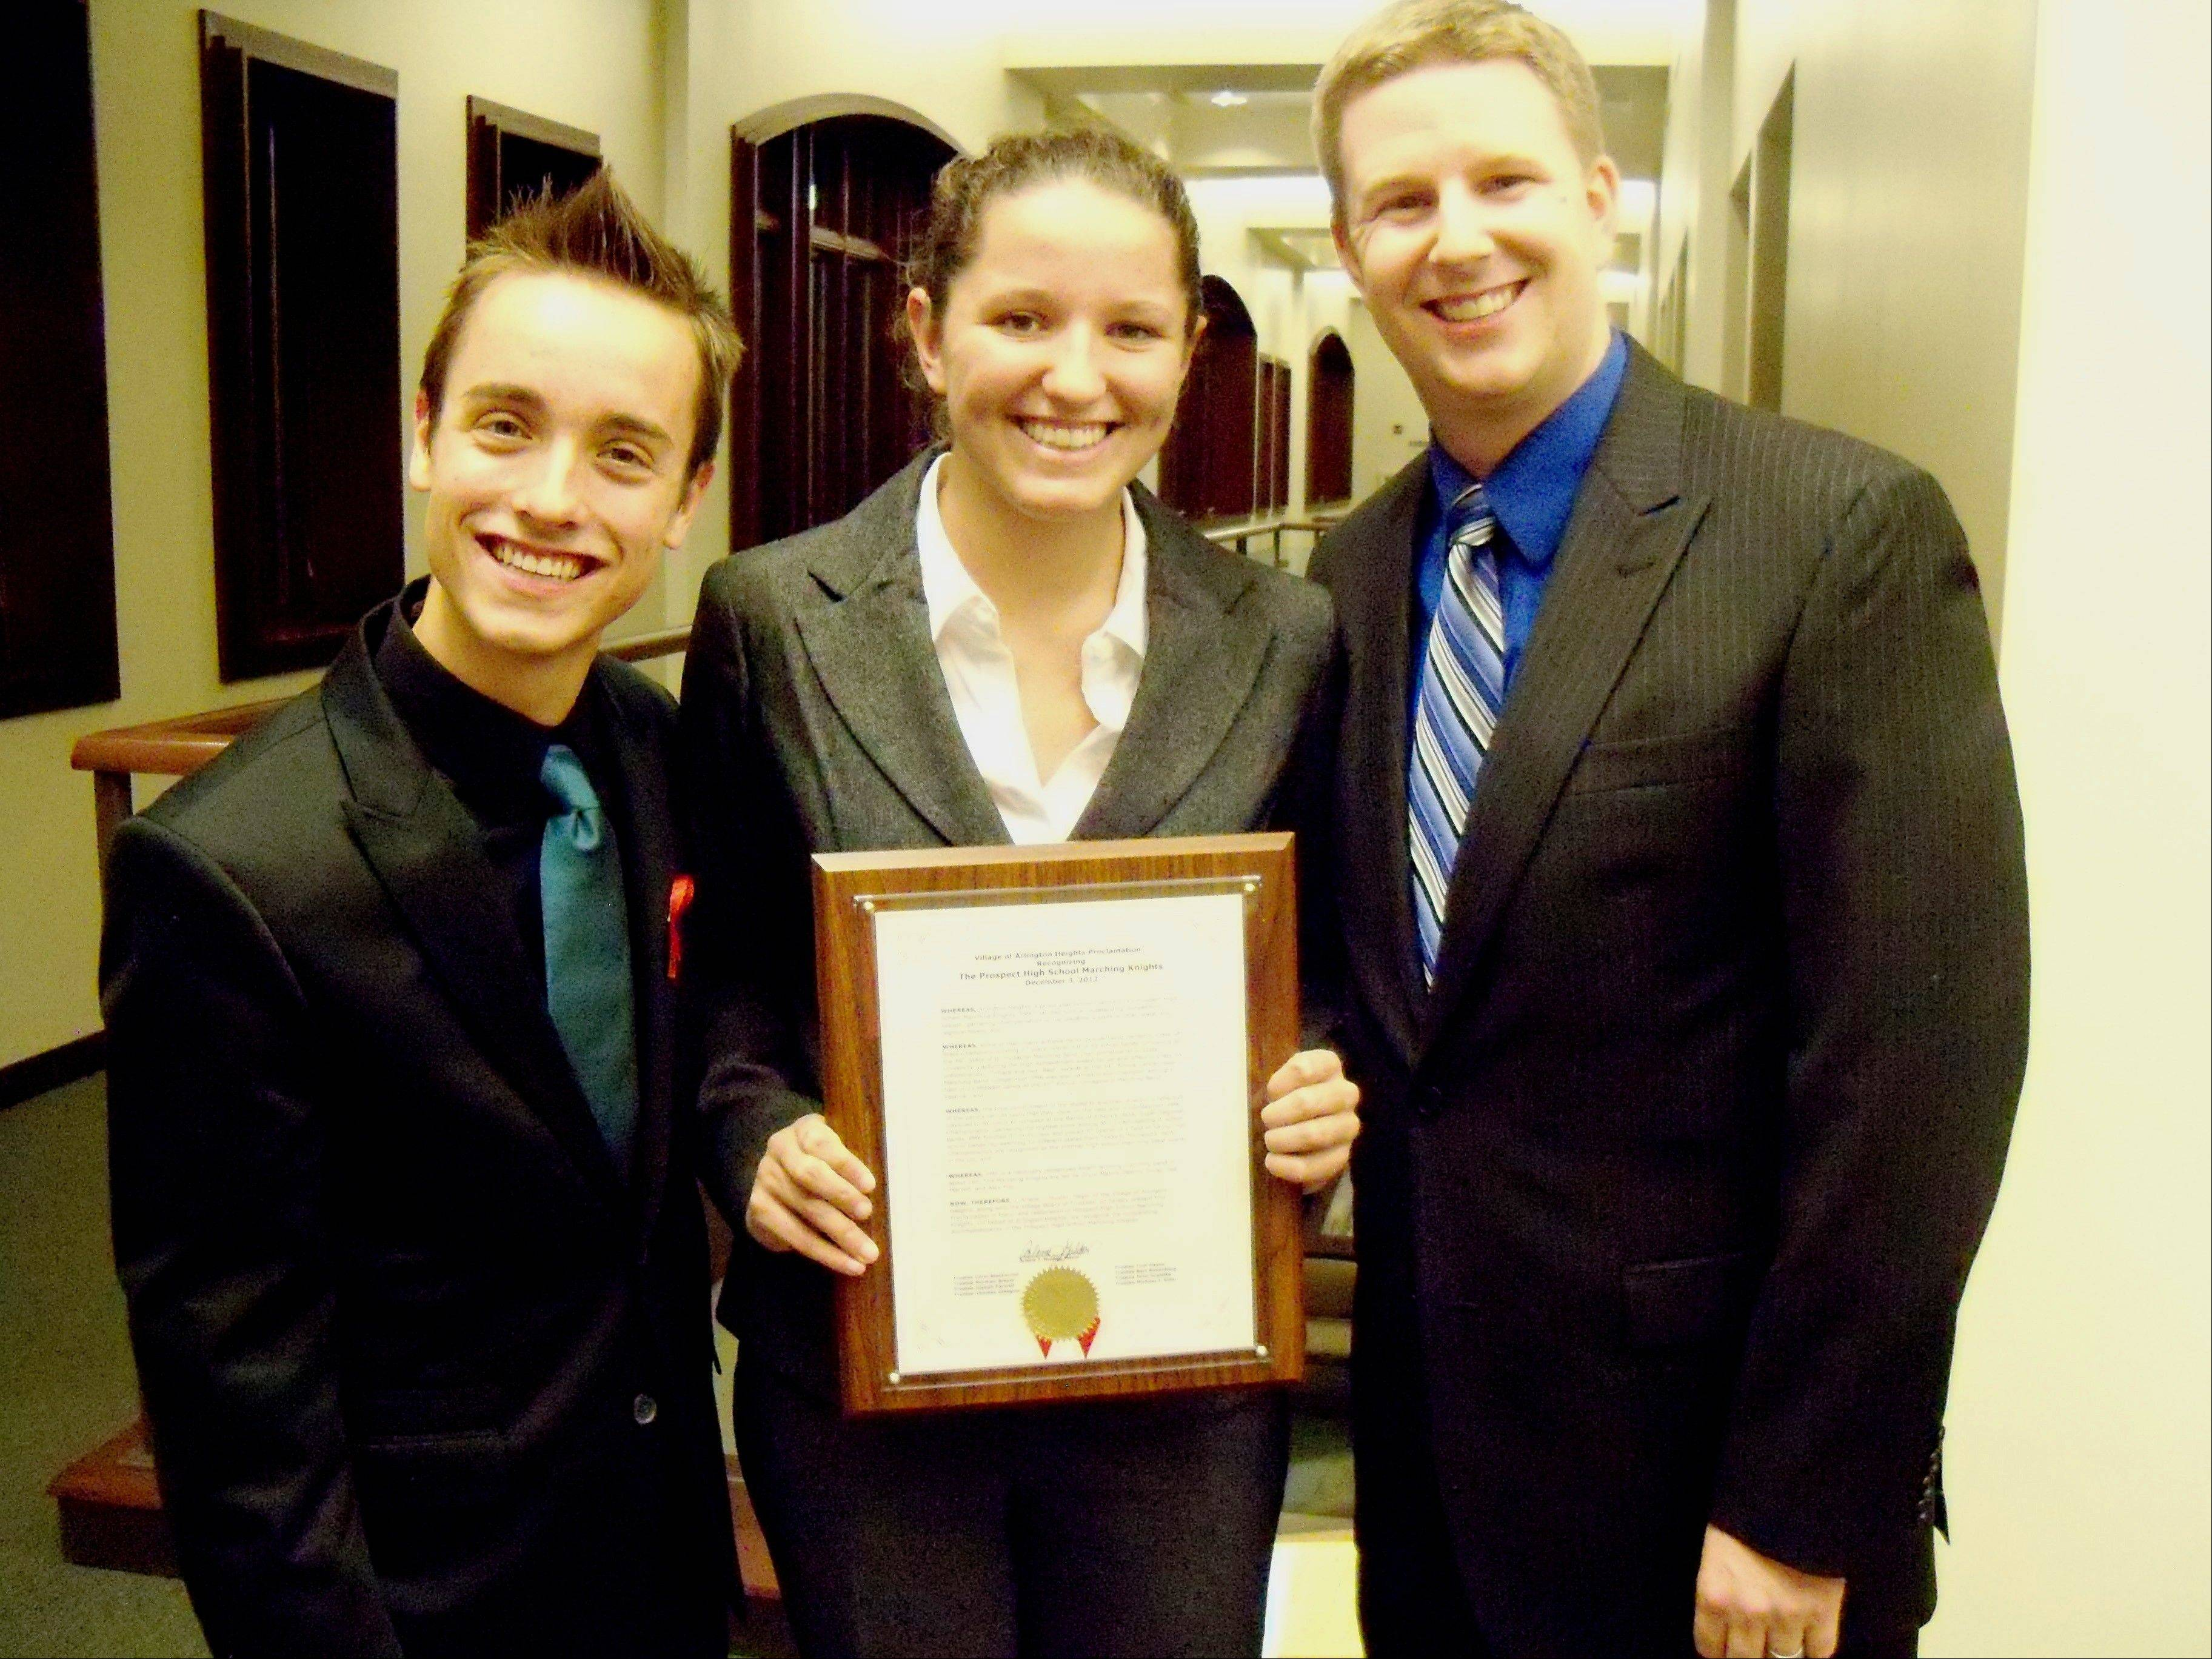 Prospect Marching Knights Drum Majors Ted Marzolf, left, and Destiny Duraj, center, display their Proclamation plaque with PMK director Chris Barnum.